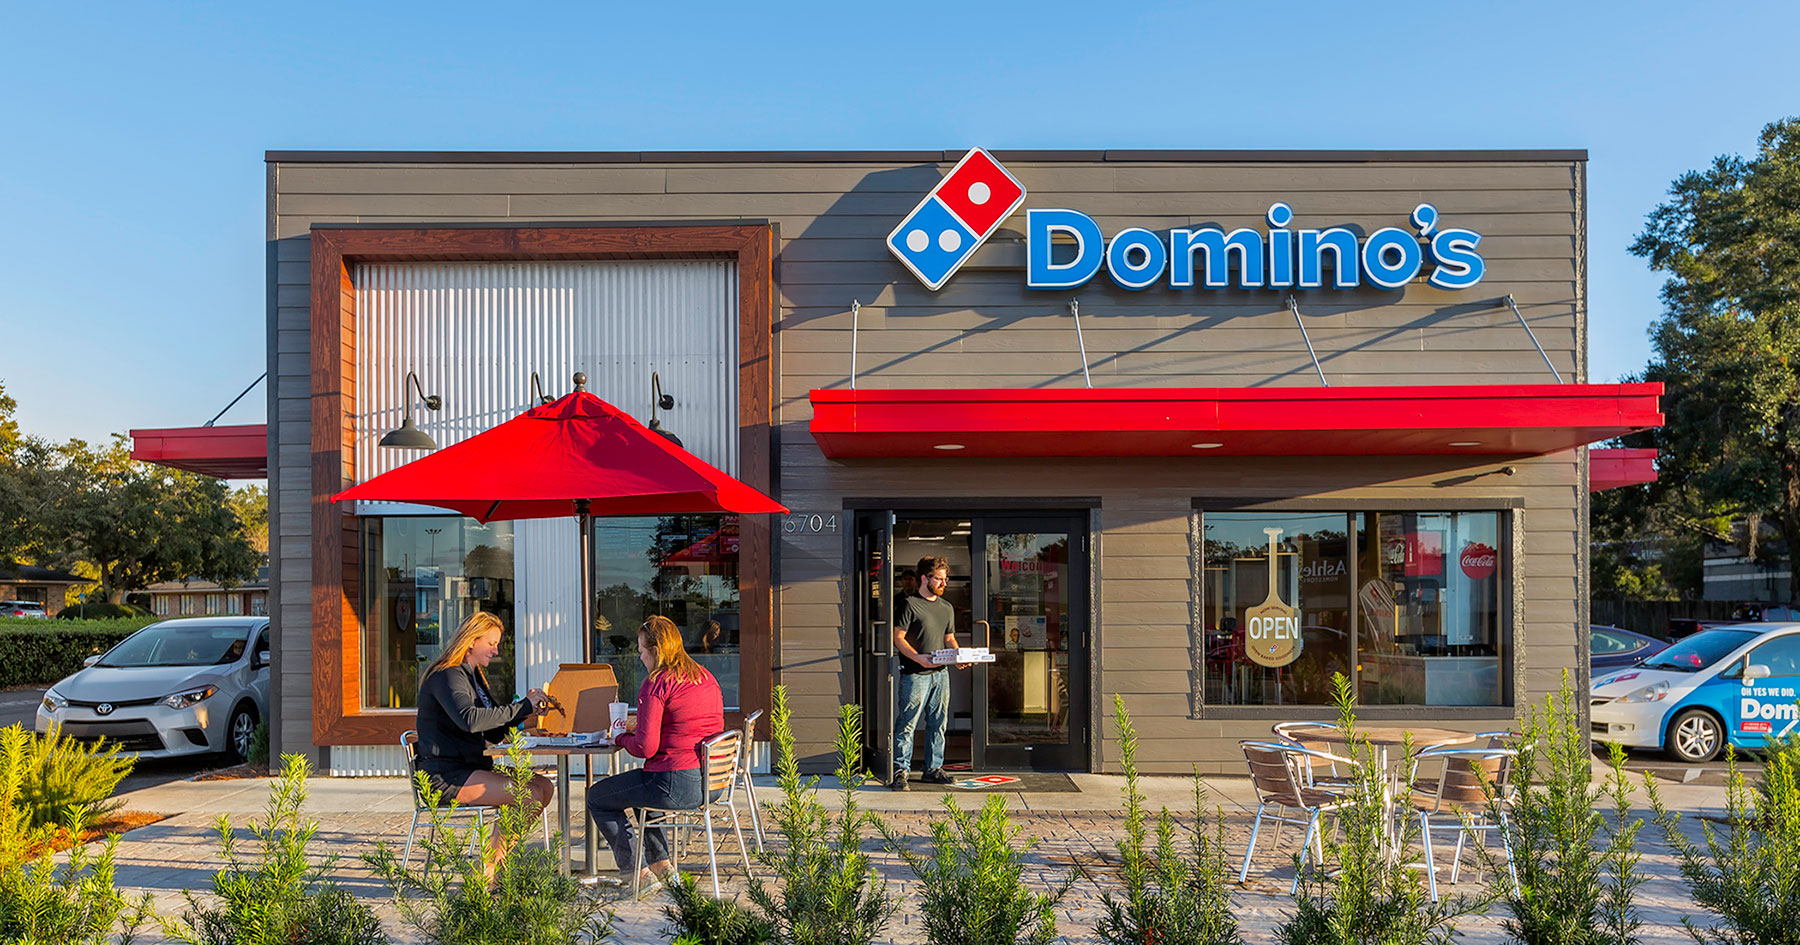 Domino's says its sales are withstanding third-party delivery